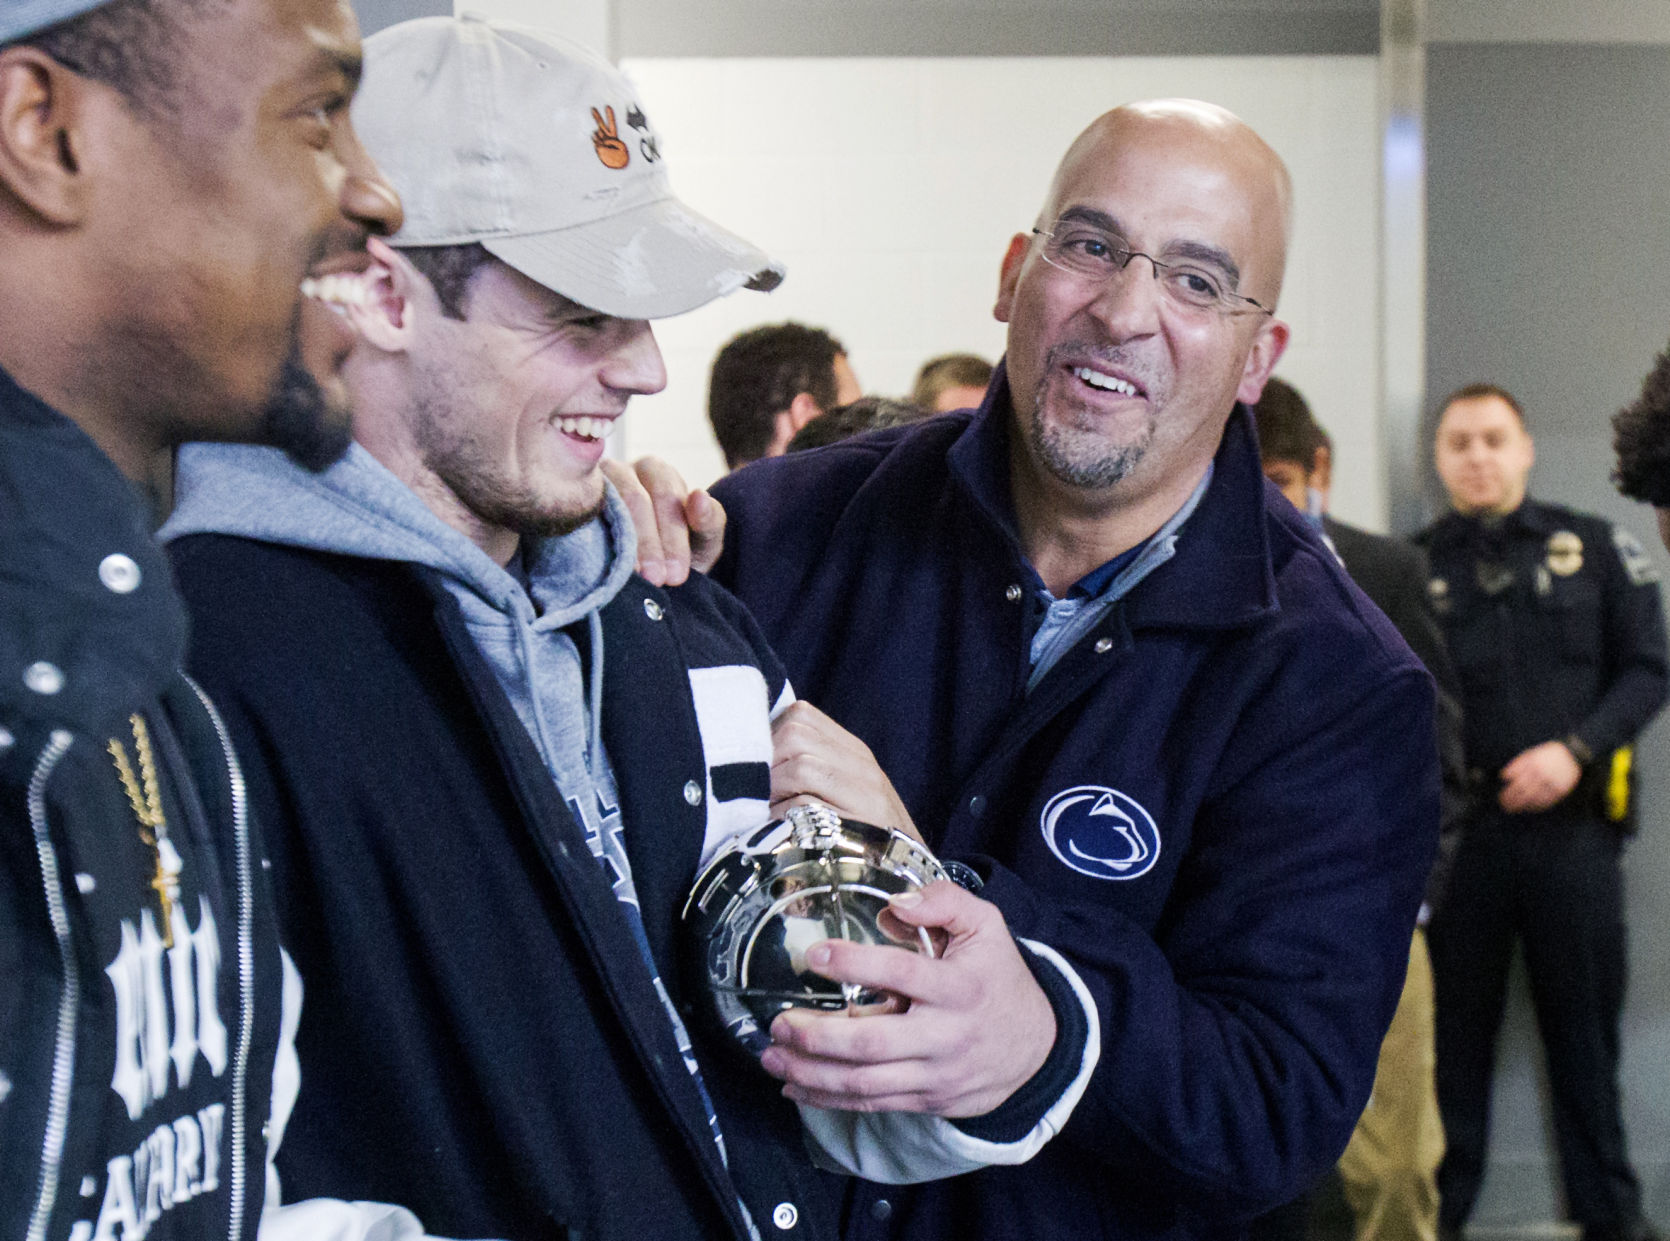 Penn State approves six-year contract extension for James Franklin